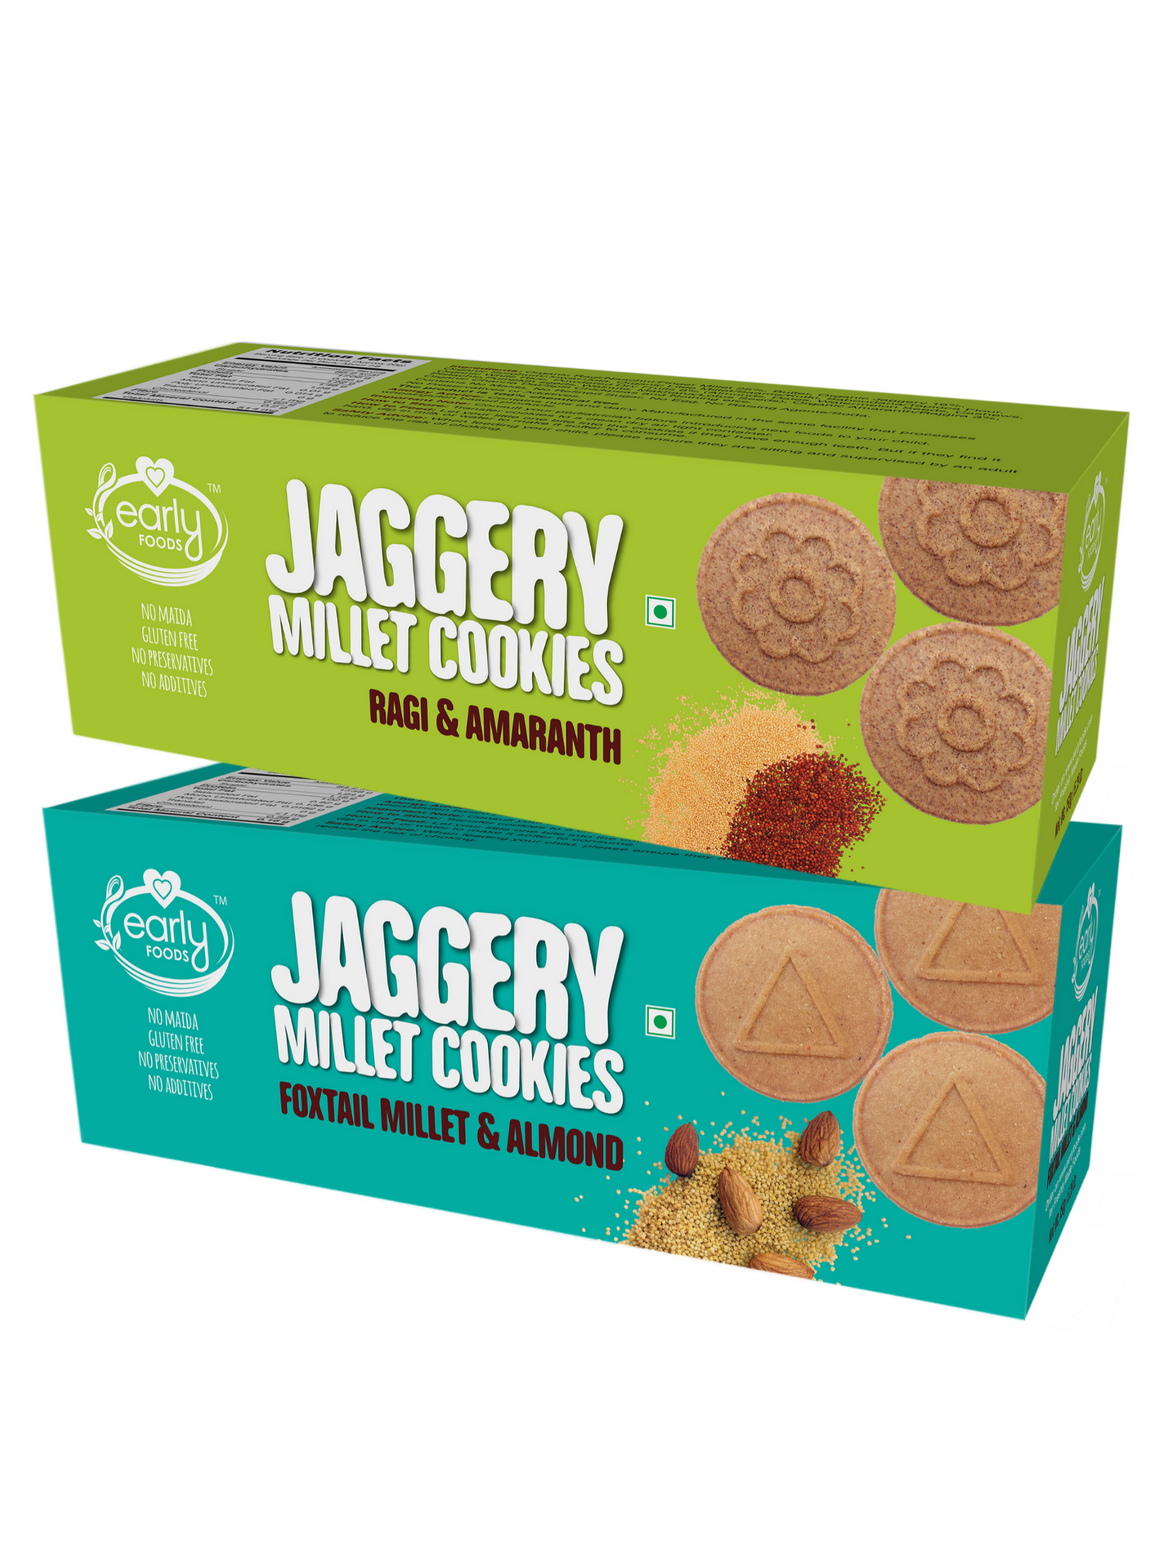 Assorted Pack of 2 - Foxtail Almond & Ragi Amaranth Jaggery Cookies X 2, 150g each